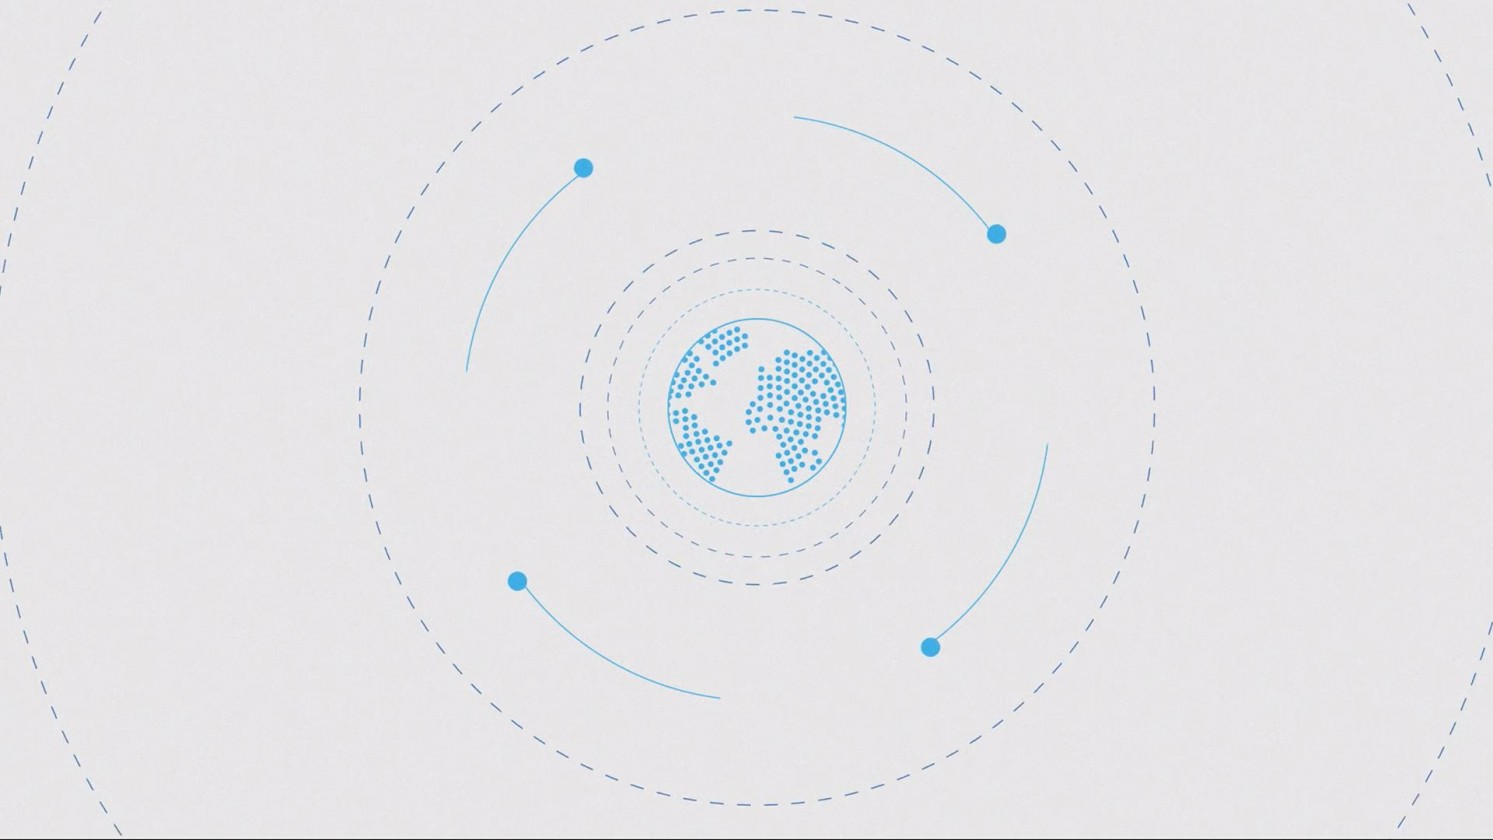 netacea animation of world and data